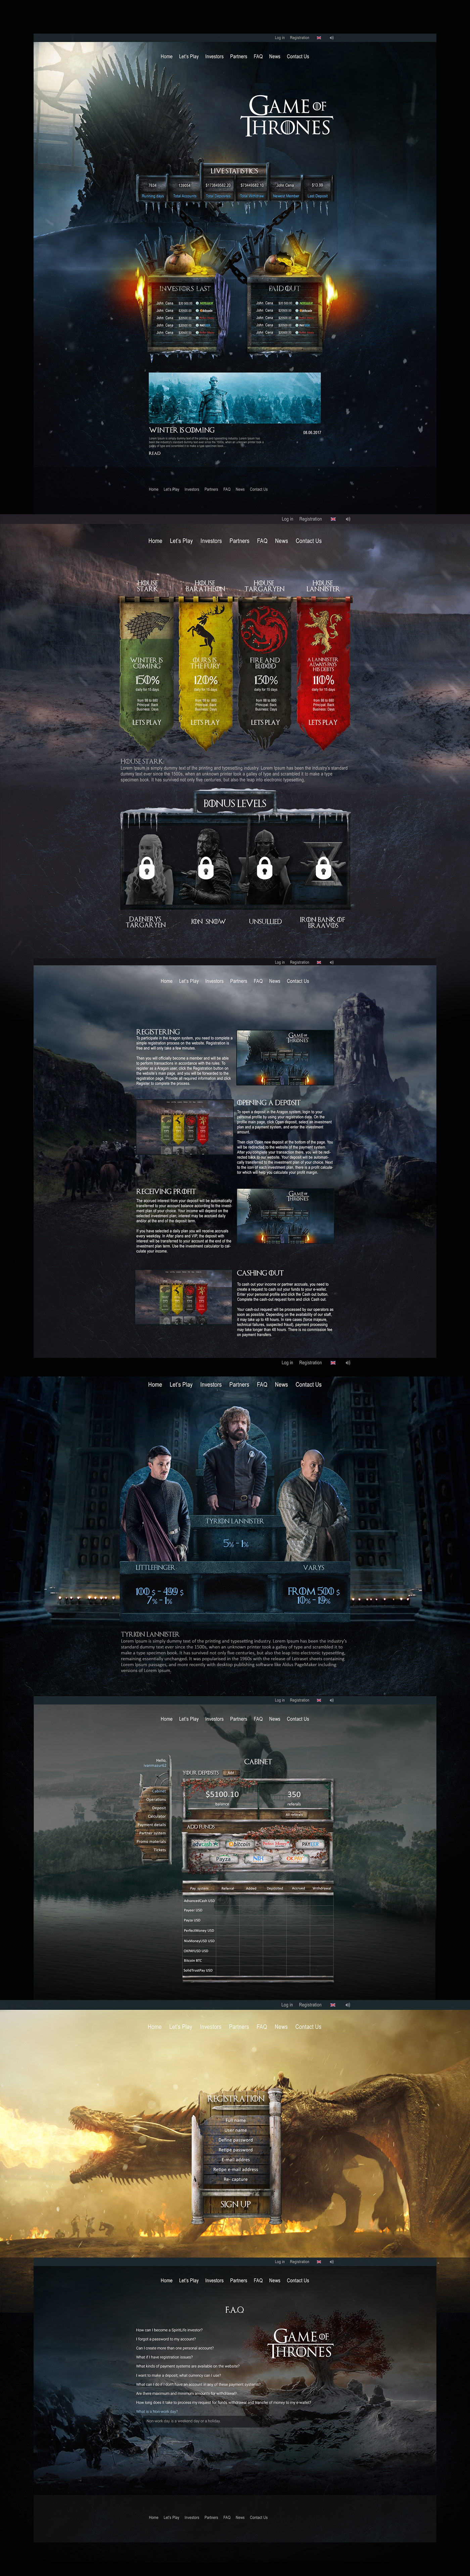 Game of Thrones Web collage